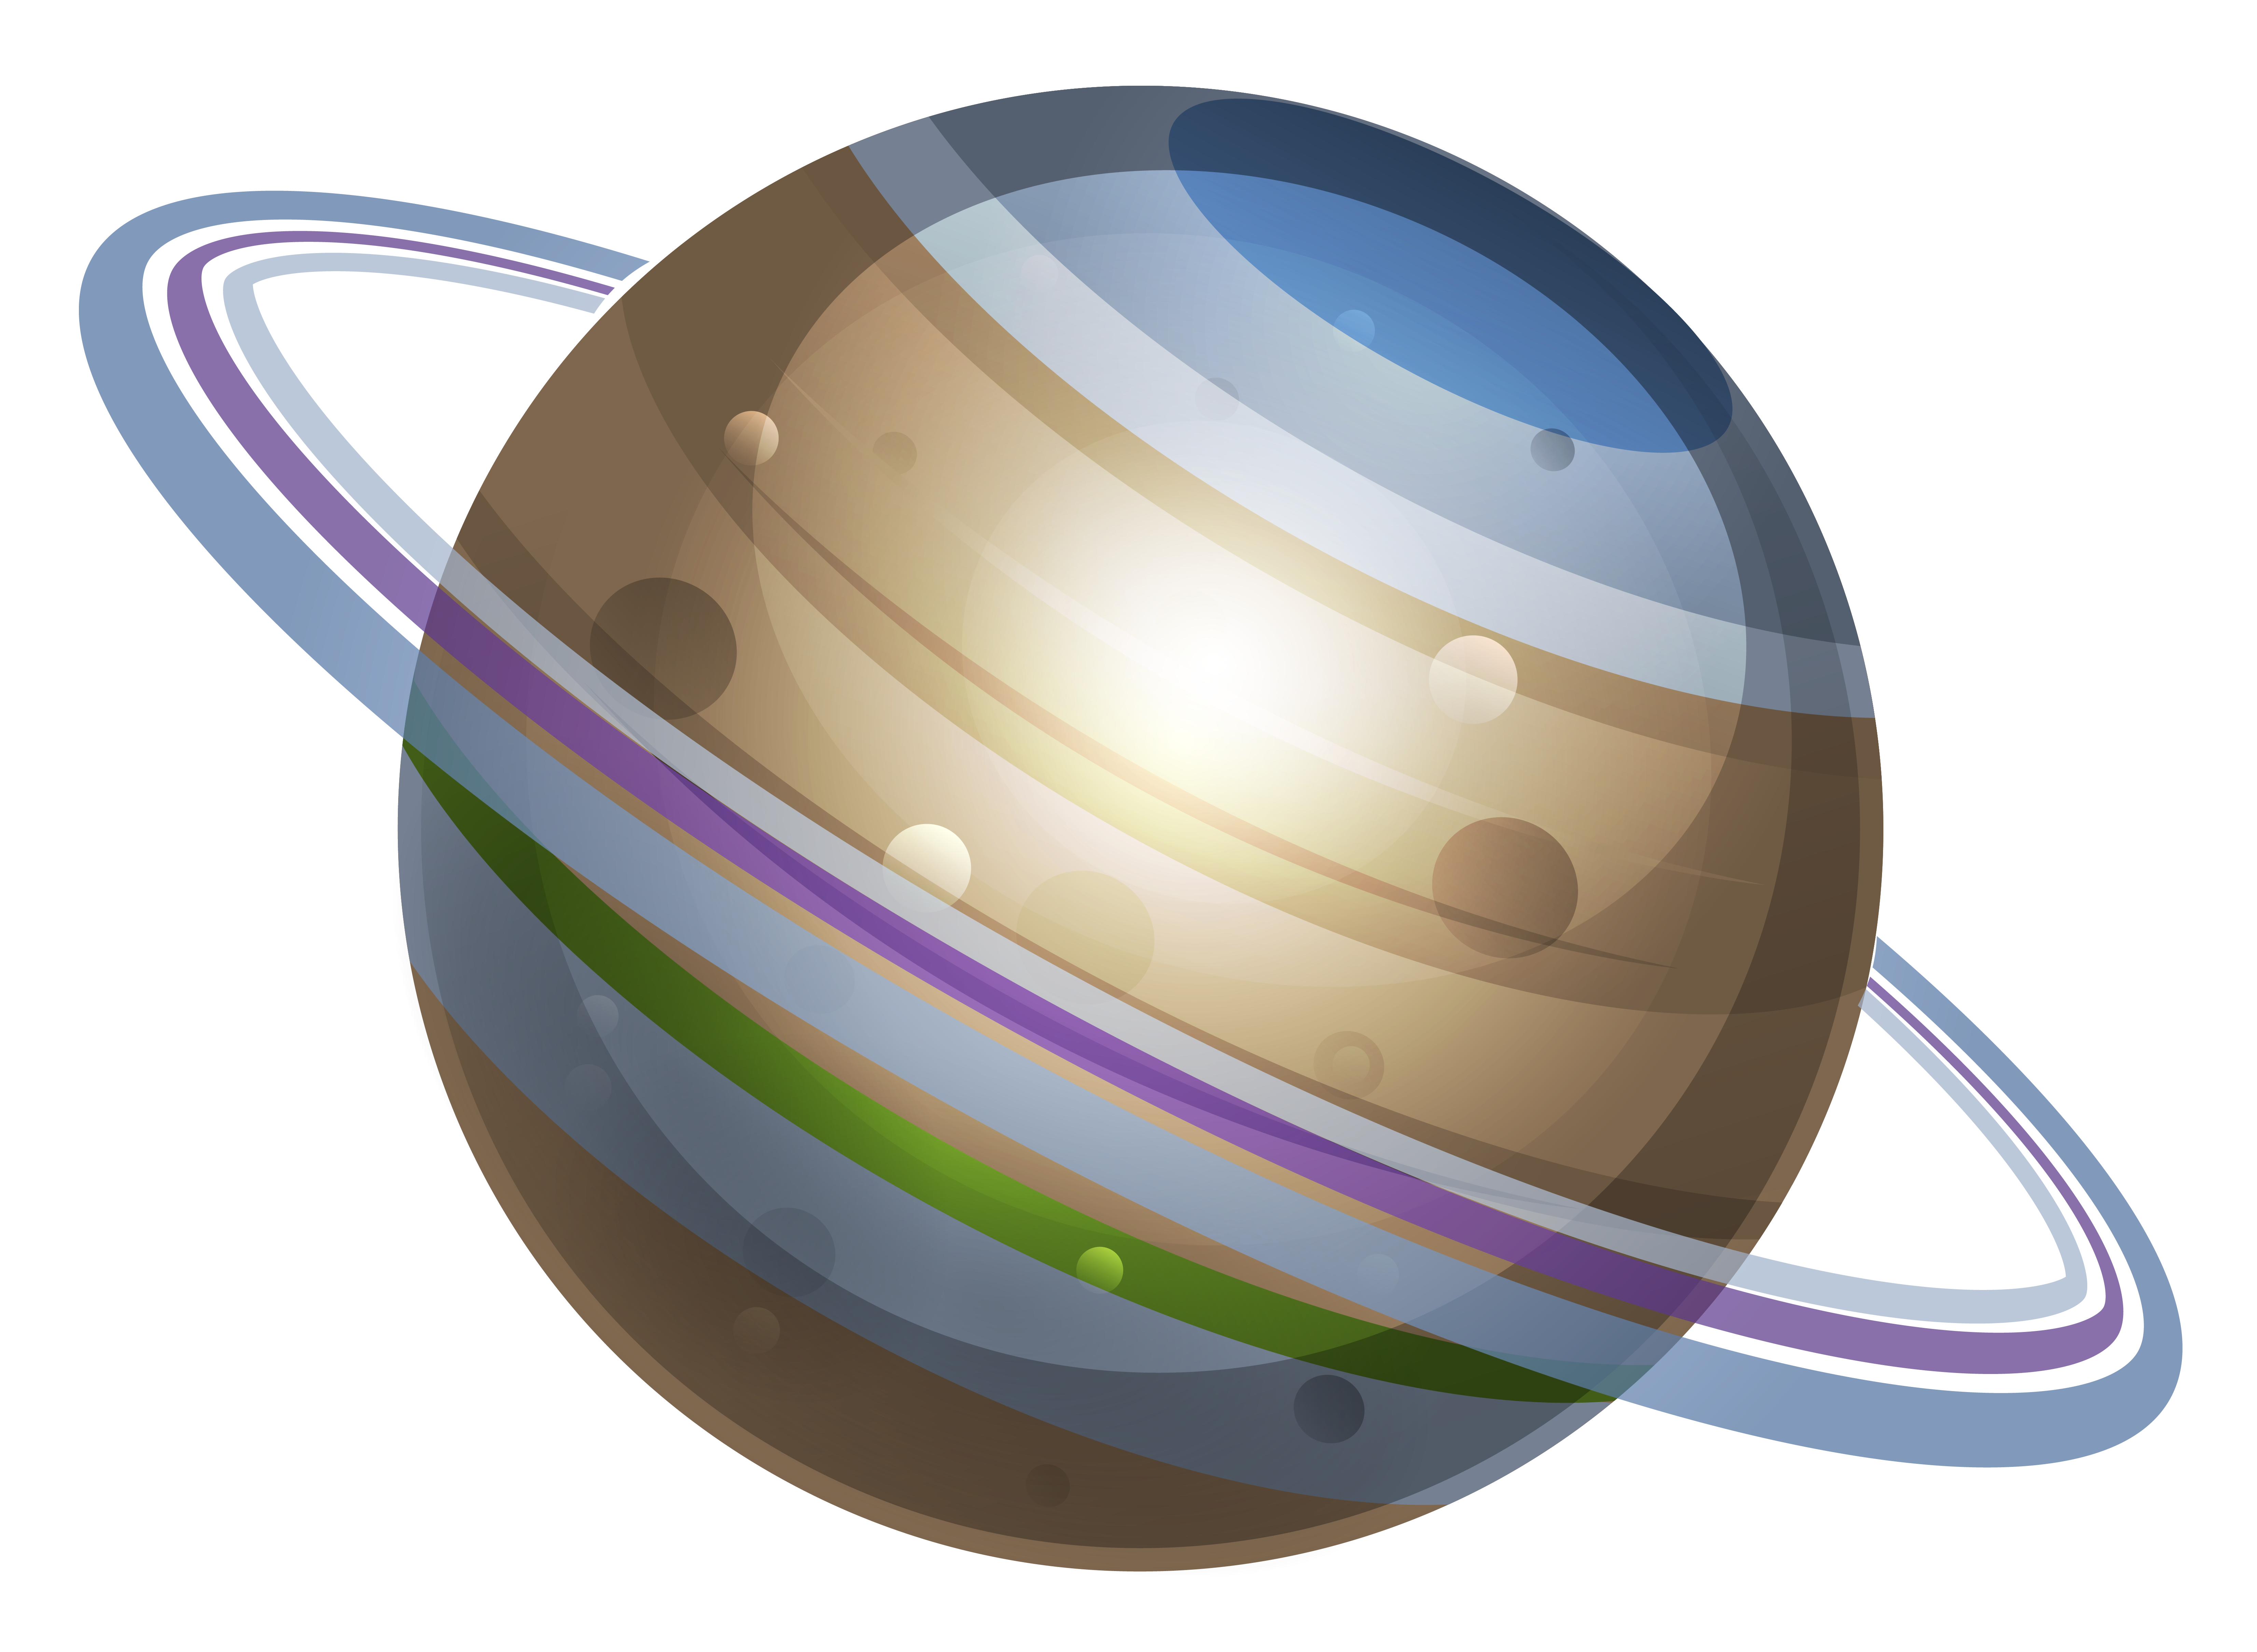 Planet clipart transparent Model Planet full Gallery PNG